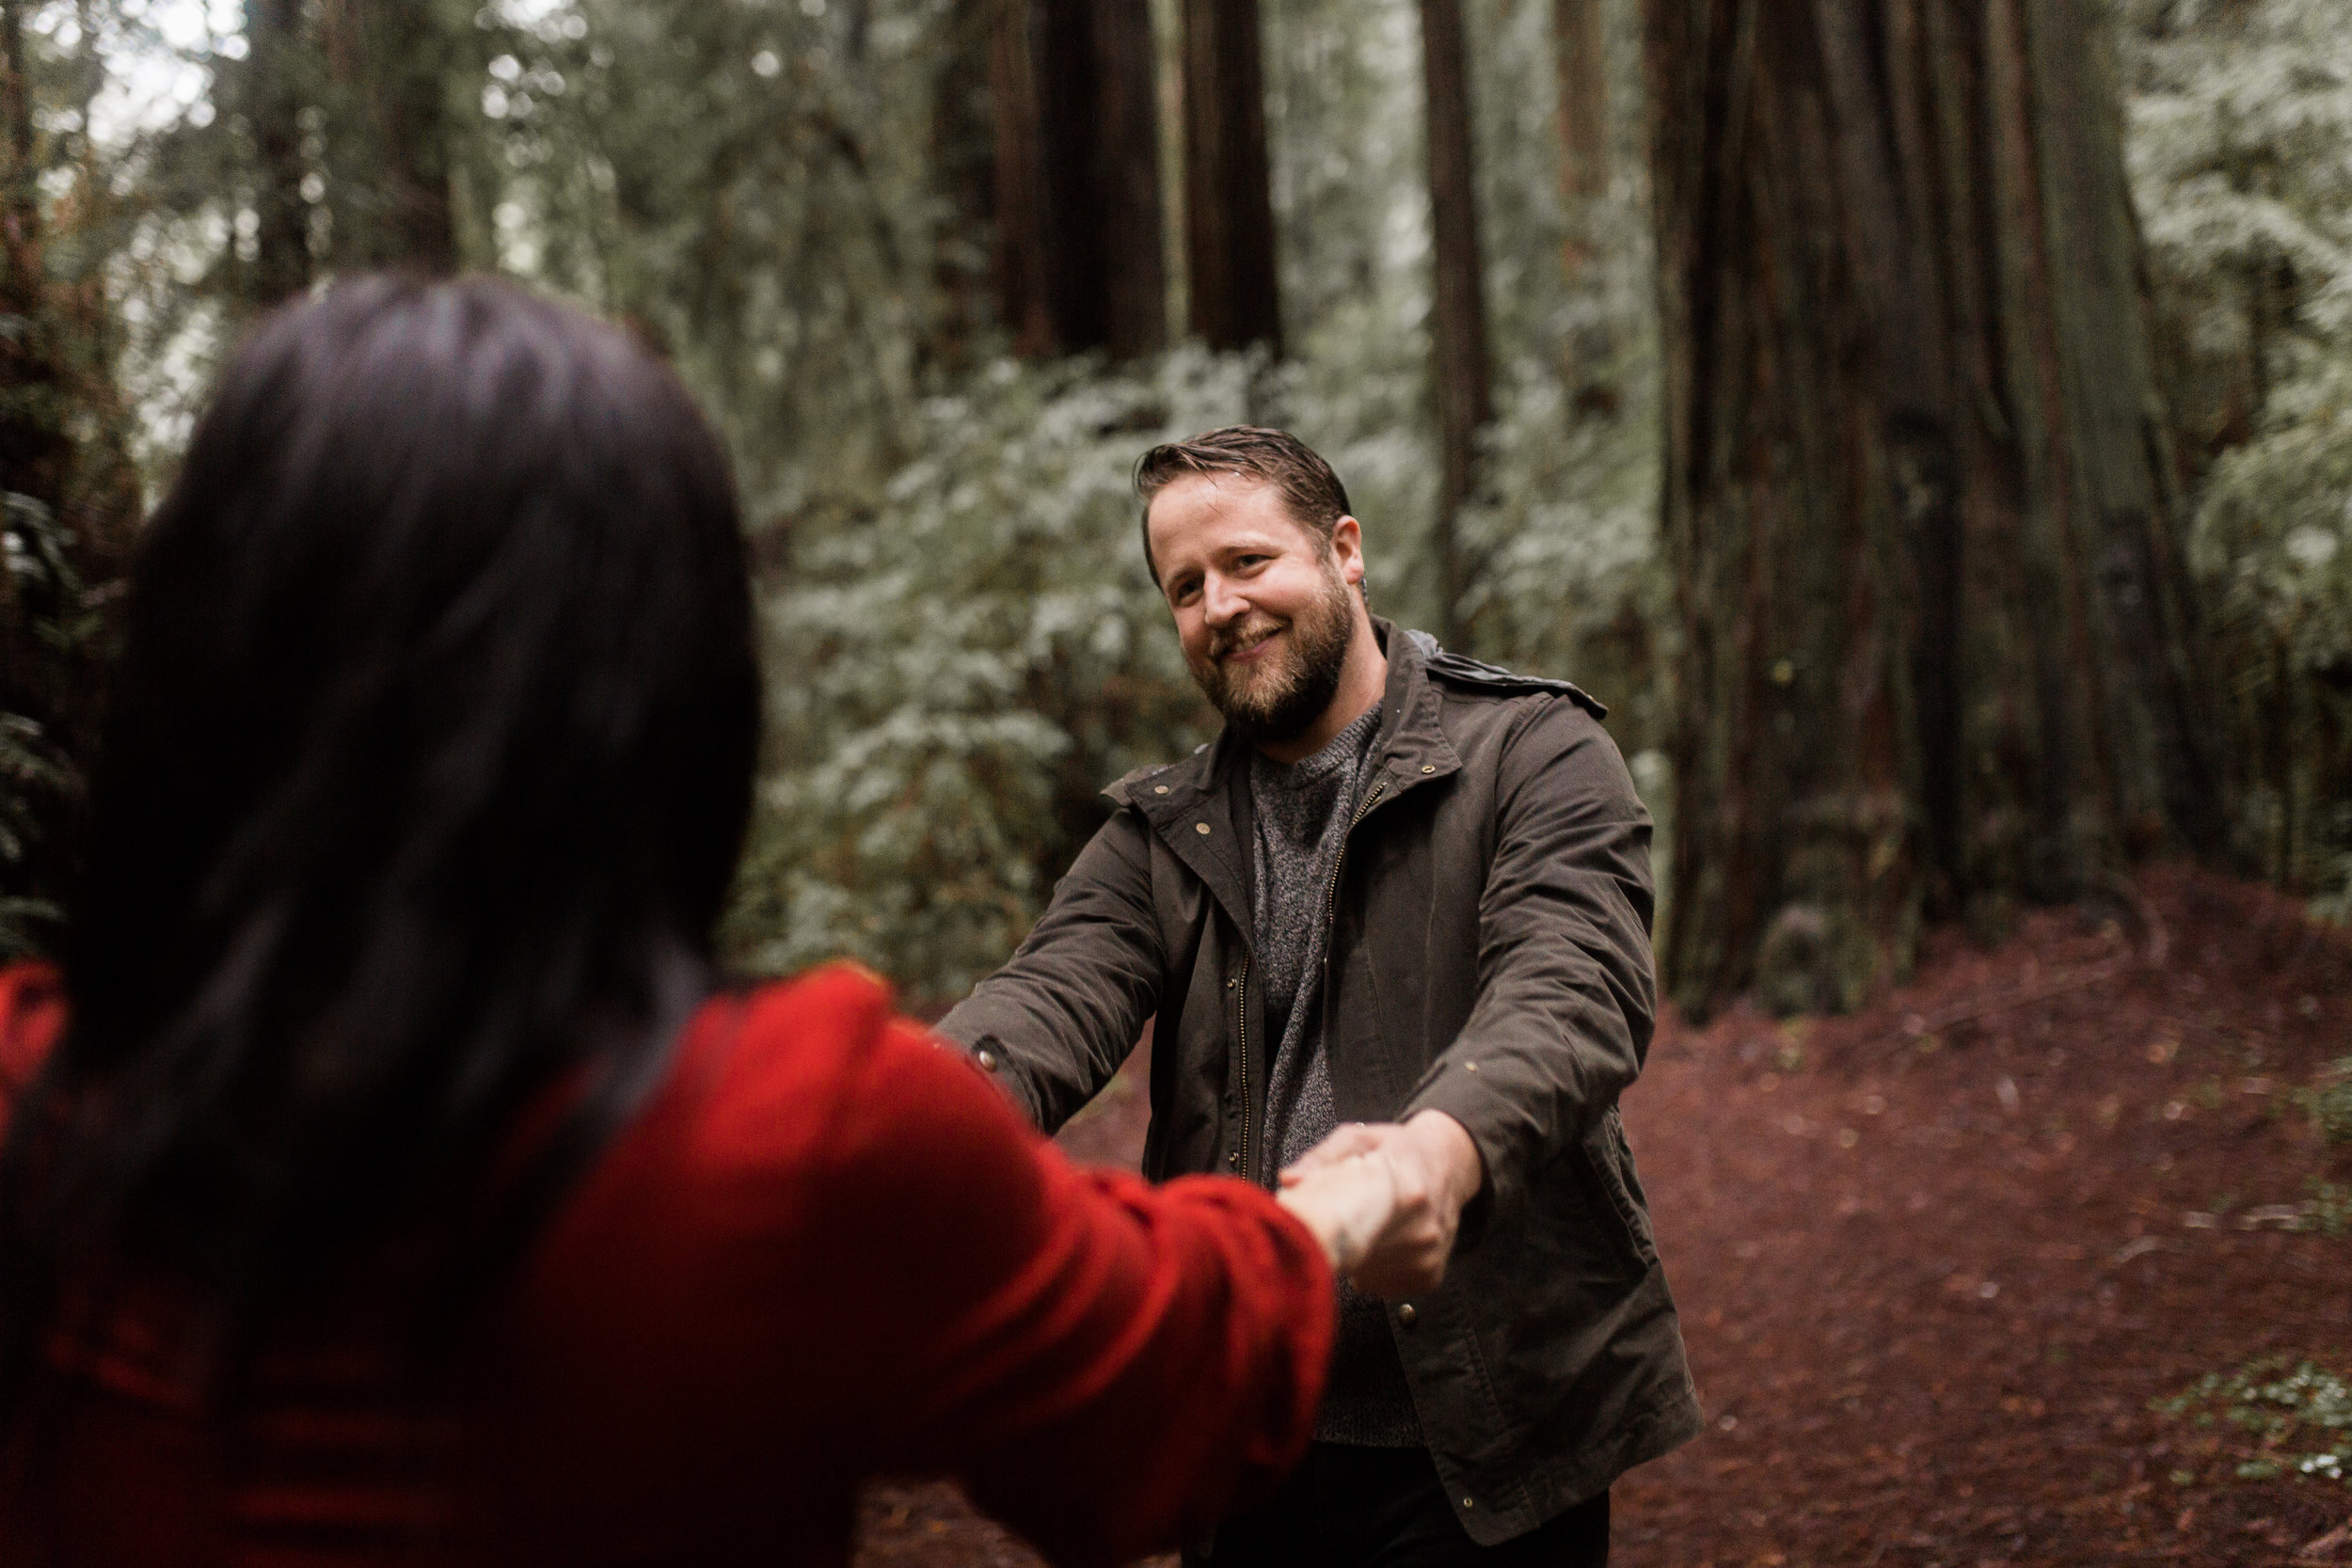 nicole-daacke-photography-redwoods-national-park-forest-rainy-foggy-adventure-engagement-session-humboldt-county-old-growth-redwood-tree-elopement-intimate-wedding-photographer-47.jpg